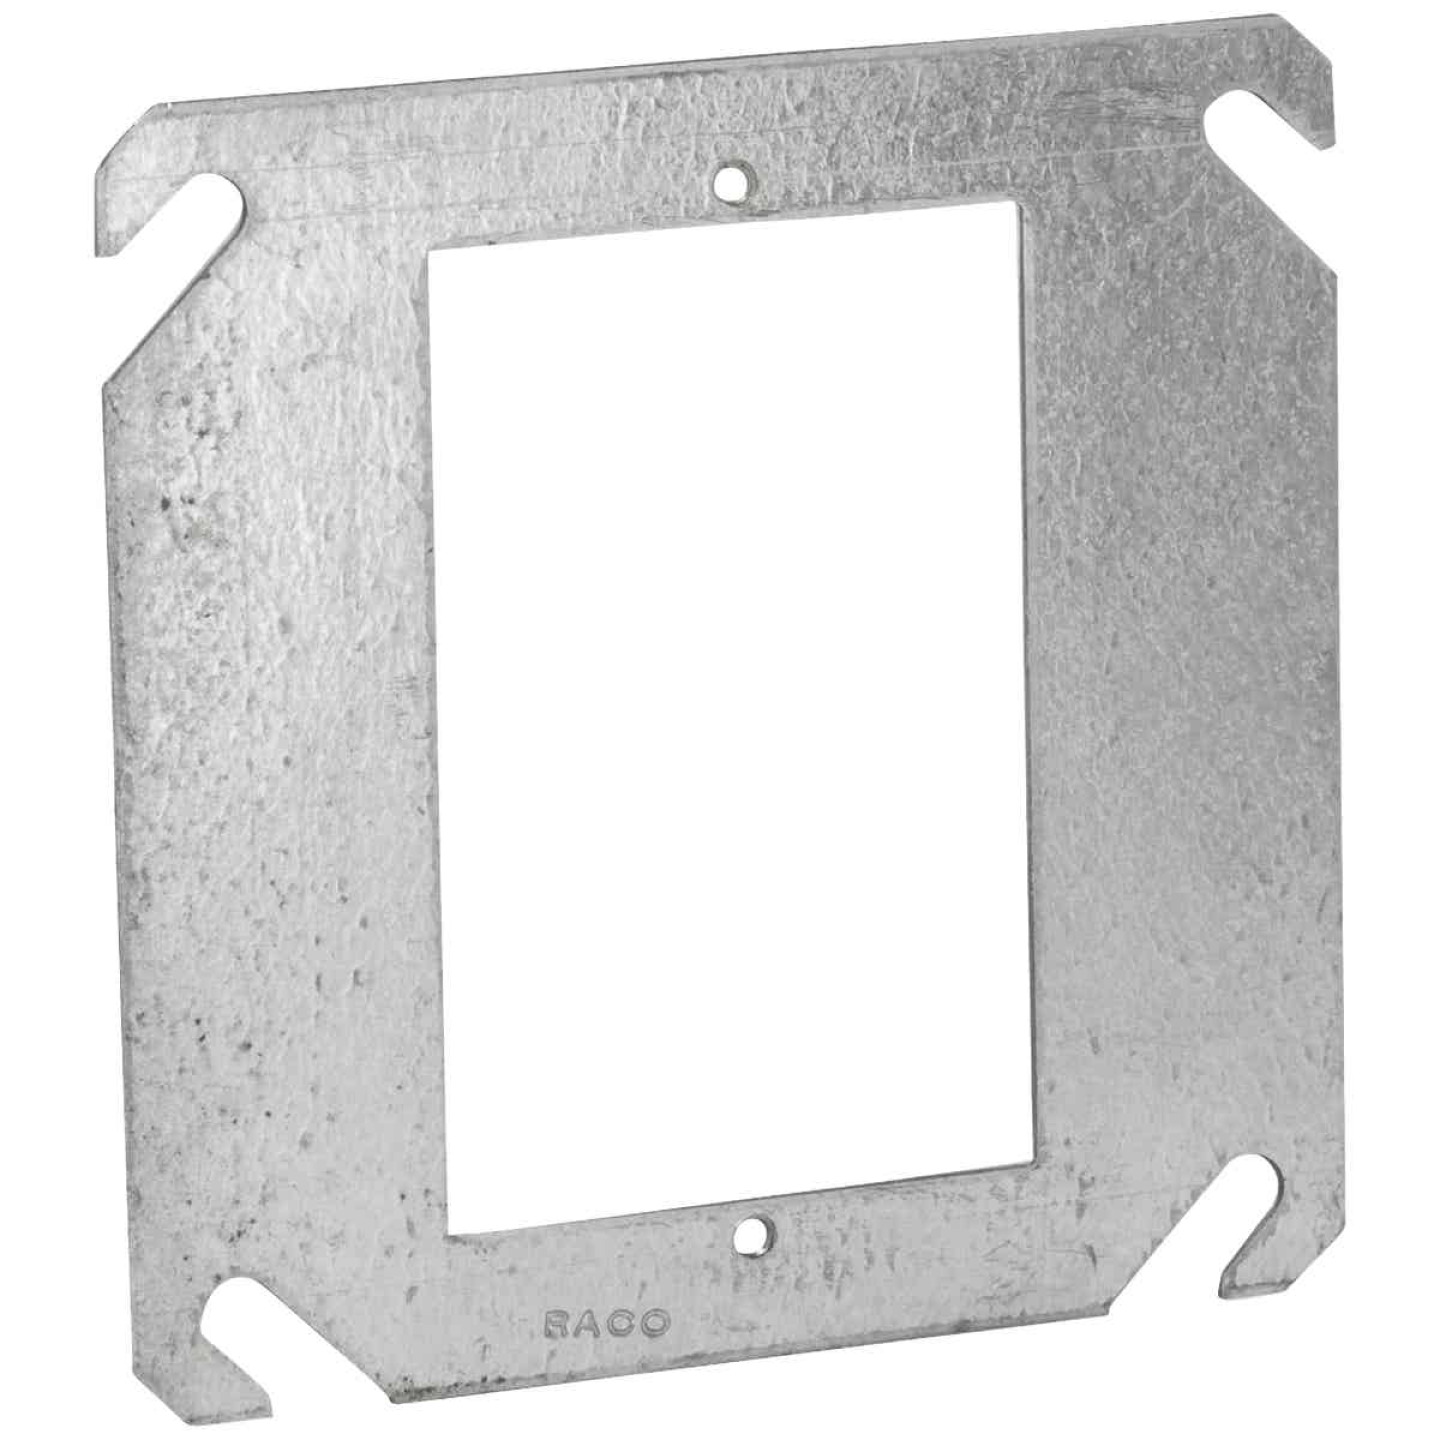 Raco Flat 1-Device Combination 4 In. x 4 In. Square Device Cover Image 1